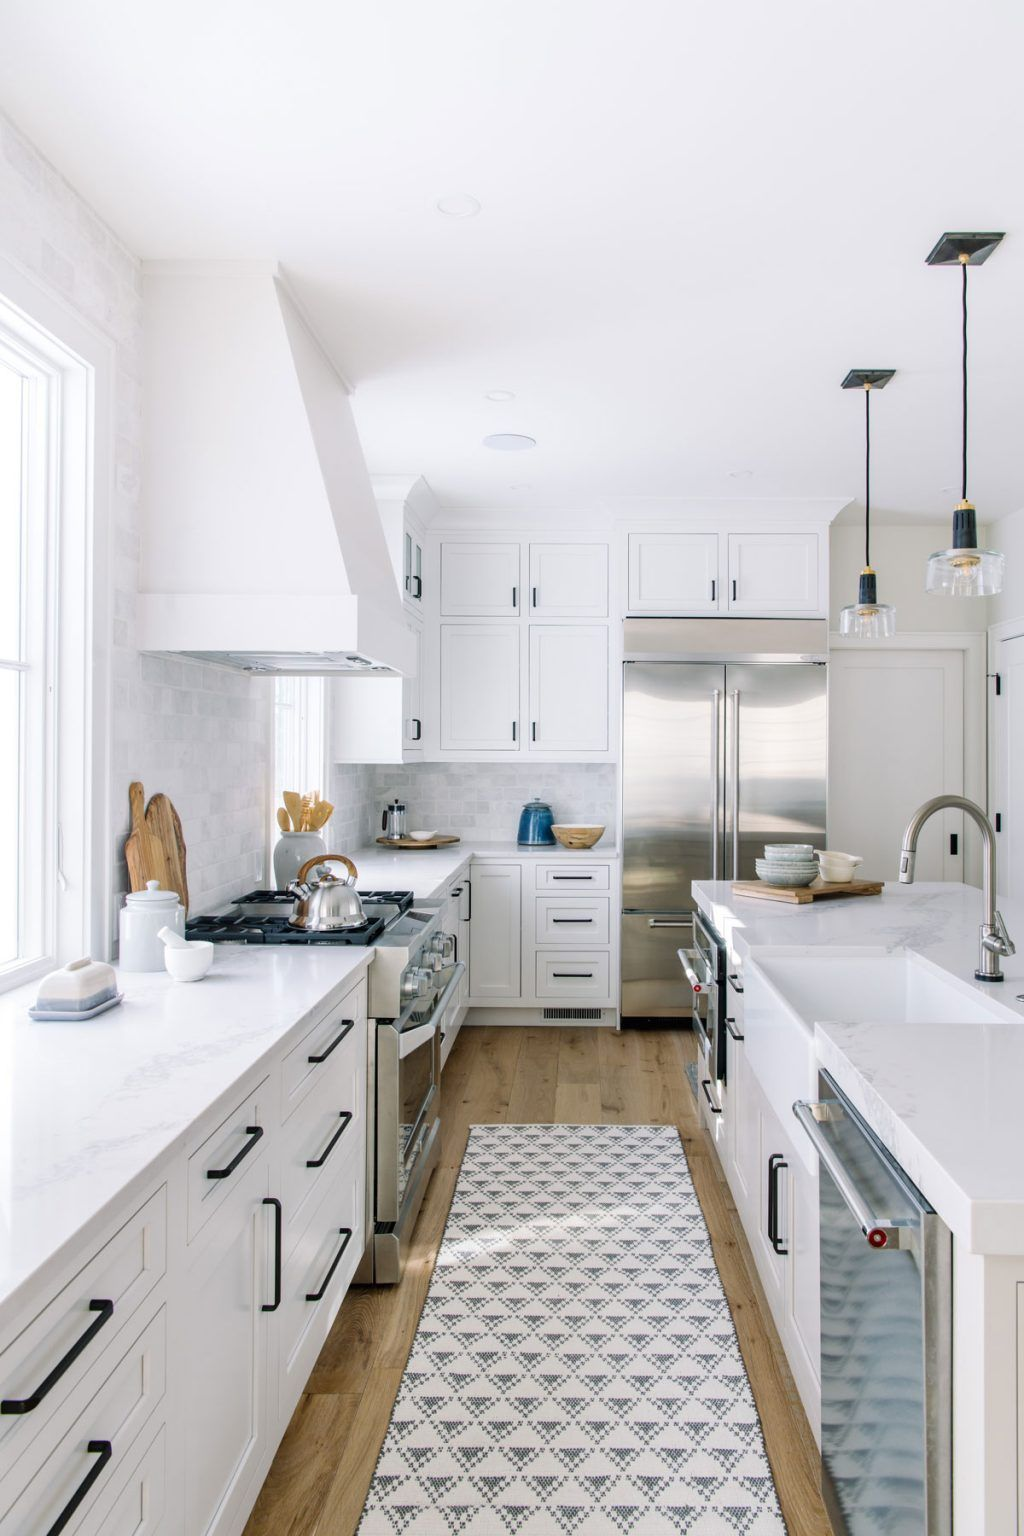 Before And After Timberline Project Reveal Interior Designer Des Moines Jillian Lare Kitchen Remodel Kitchen Design Full Kitchen Remodel